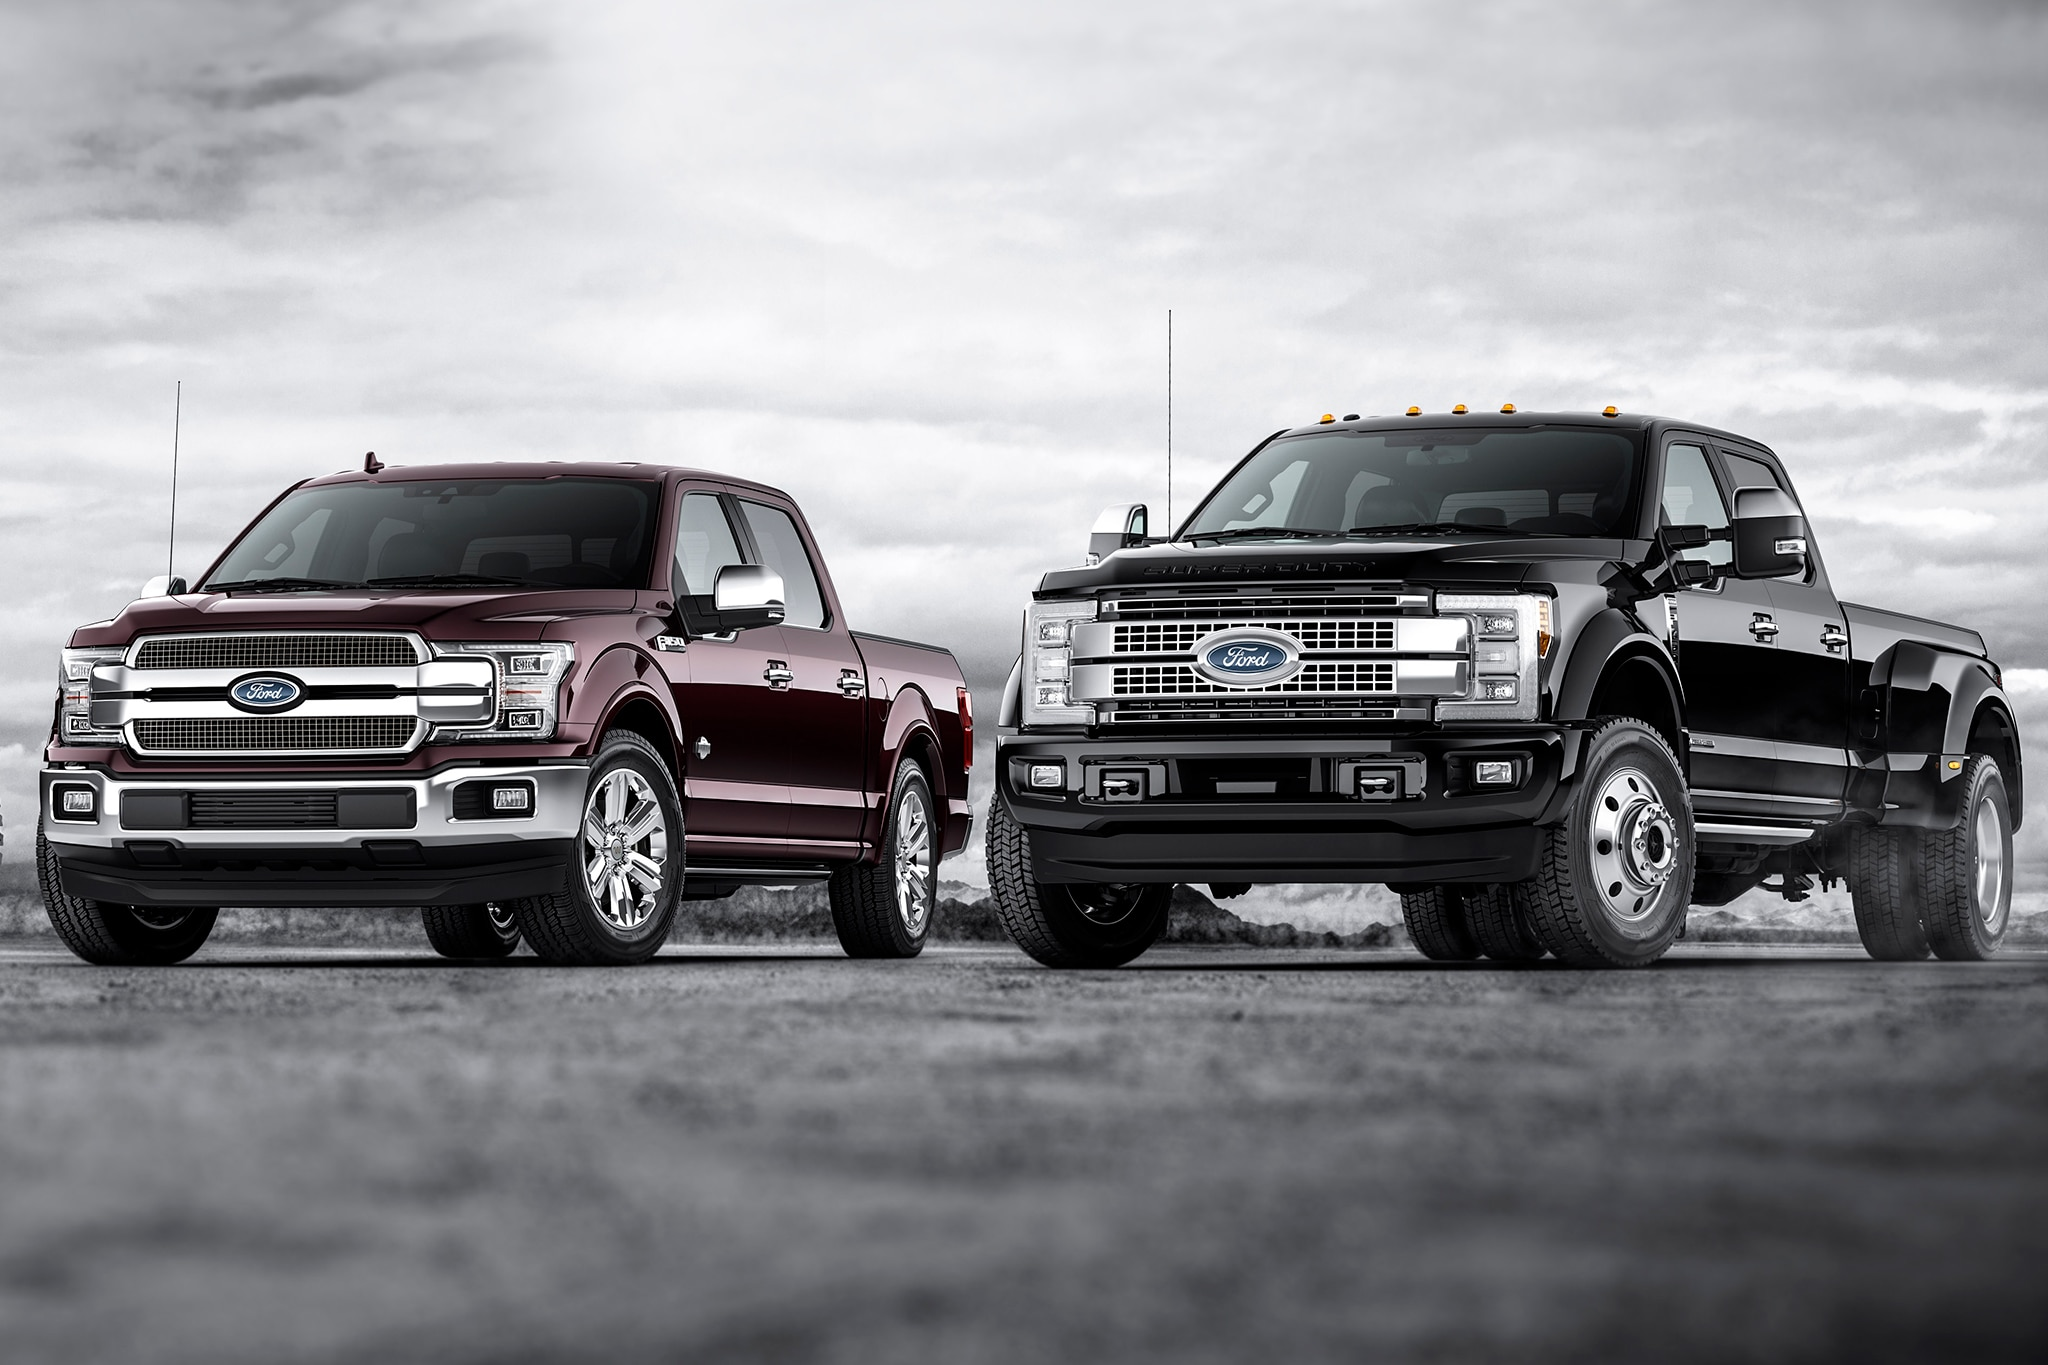 Ford Announces Off-Road SUV Below Bronco and Teases the Mustang Shelby GT 500 | Automobile Magazine